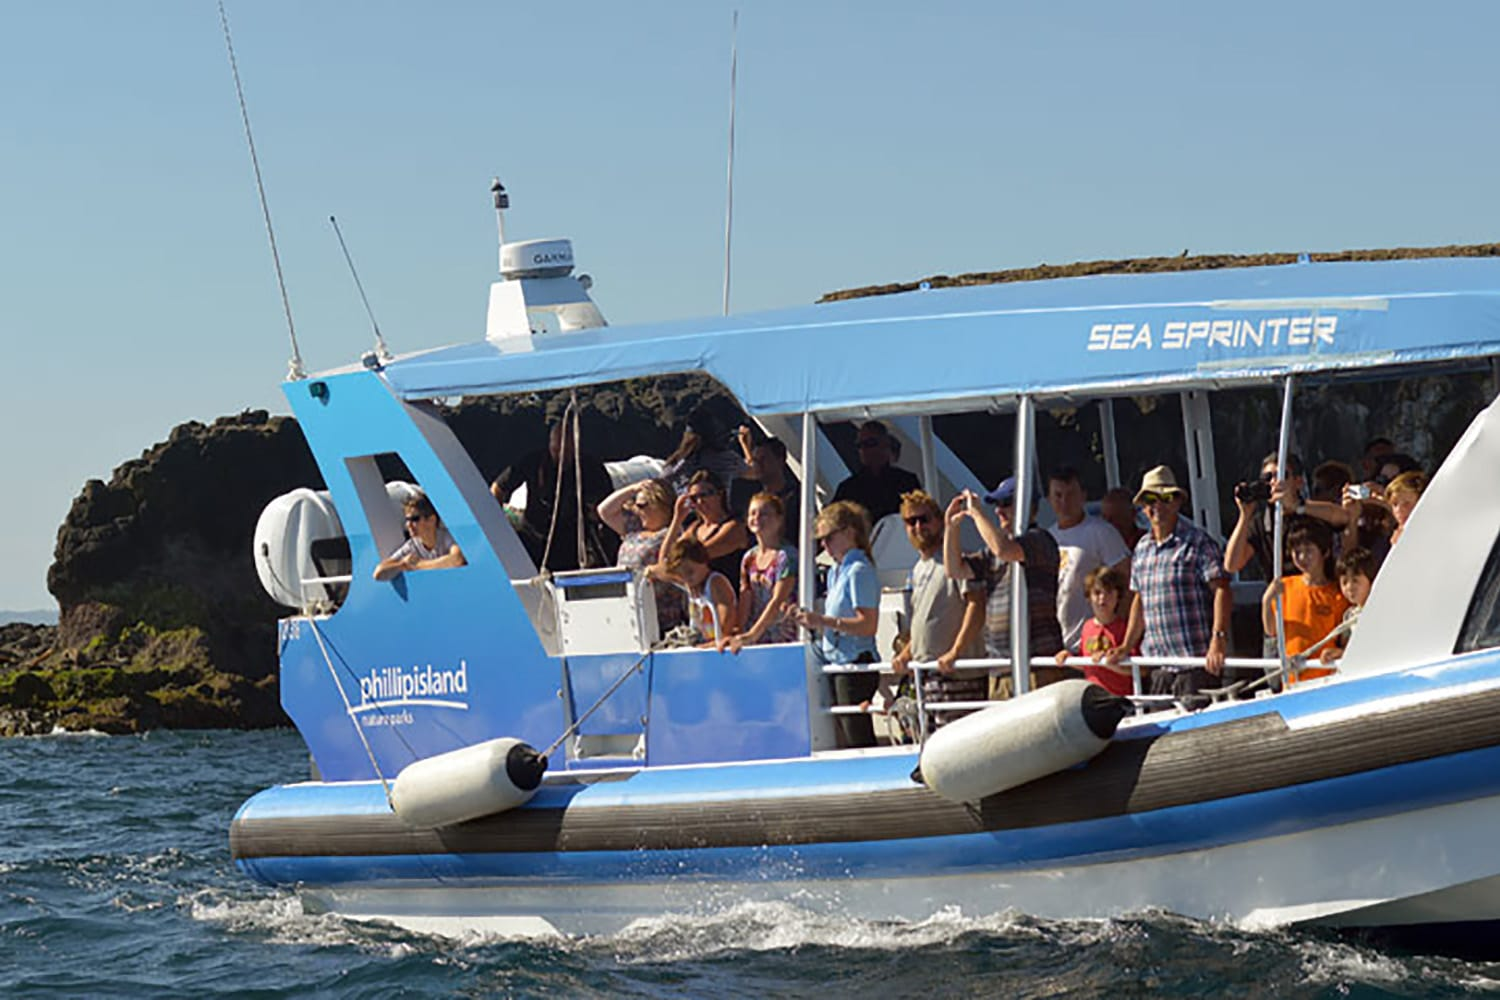 Phillip Island Adventure Boat Tour - 90 Minutes